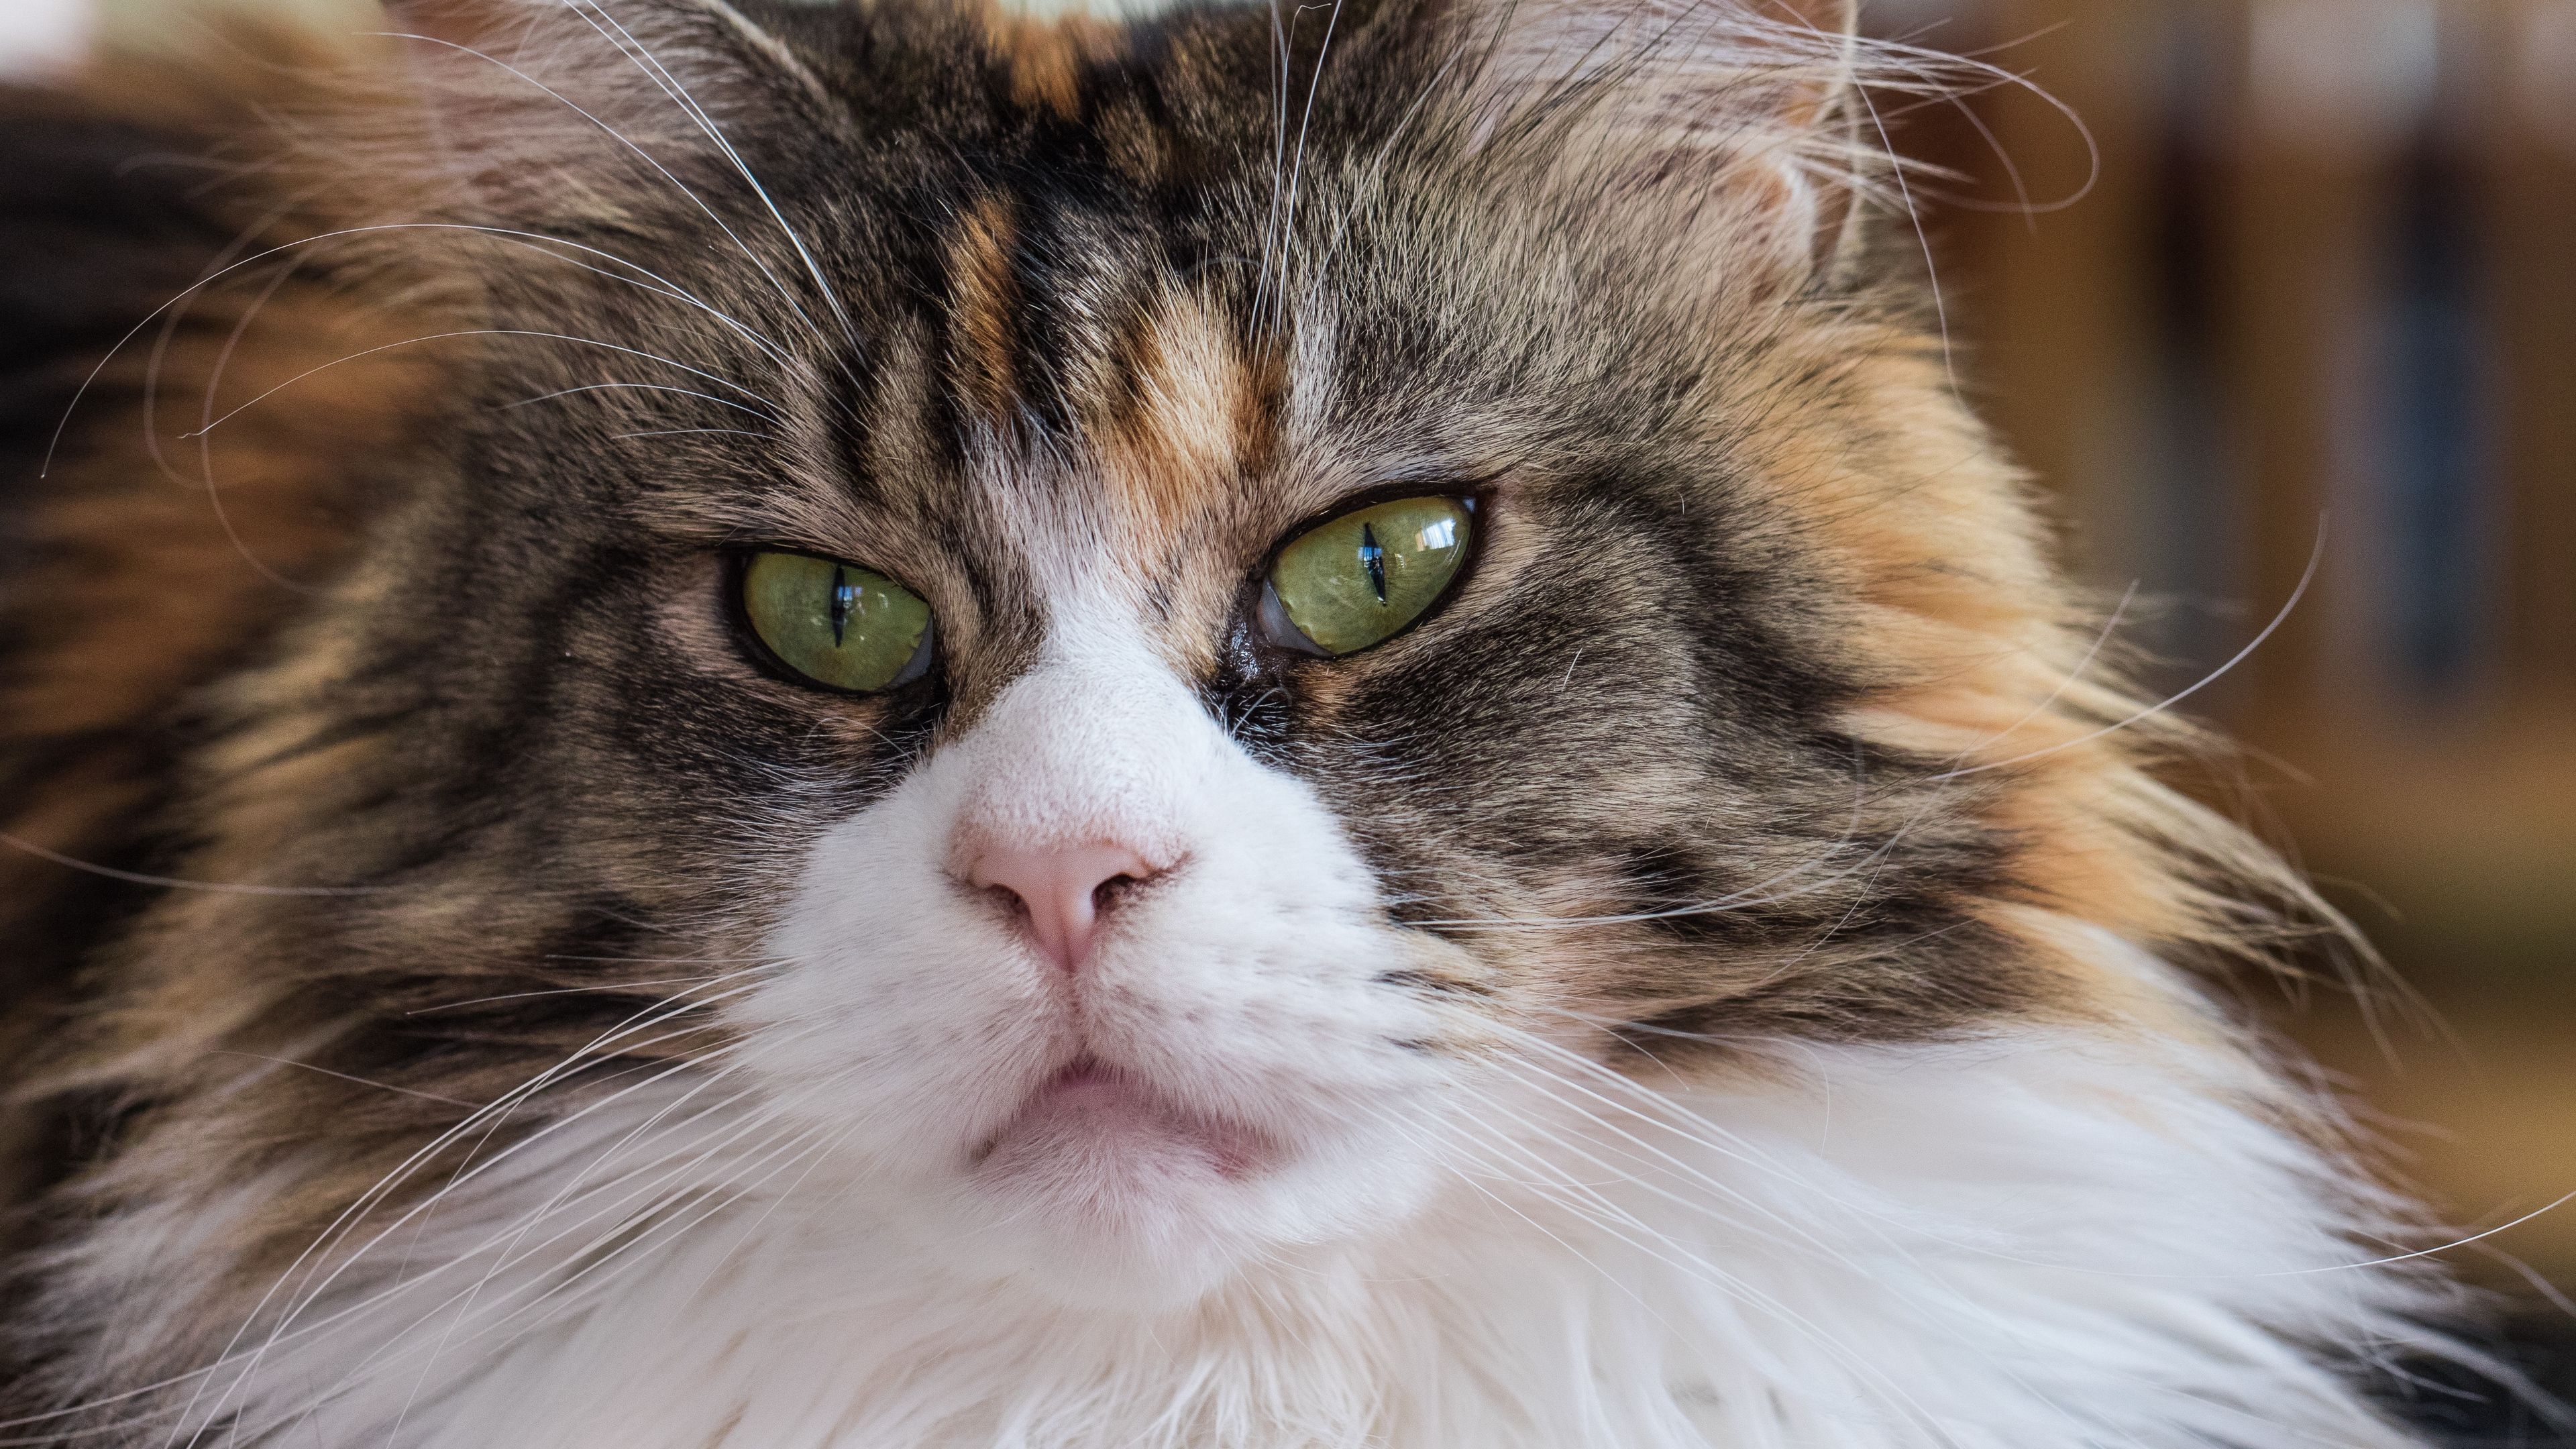 maine coon cat muzzle fluffy 4k 1542242592 - maine coon, cat, muzzle, fluffy 4k - muzzle, maine coon, Cat